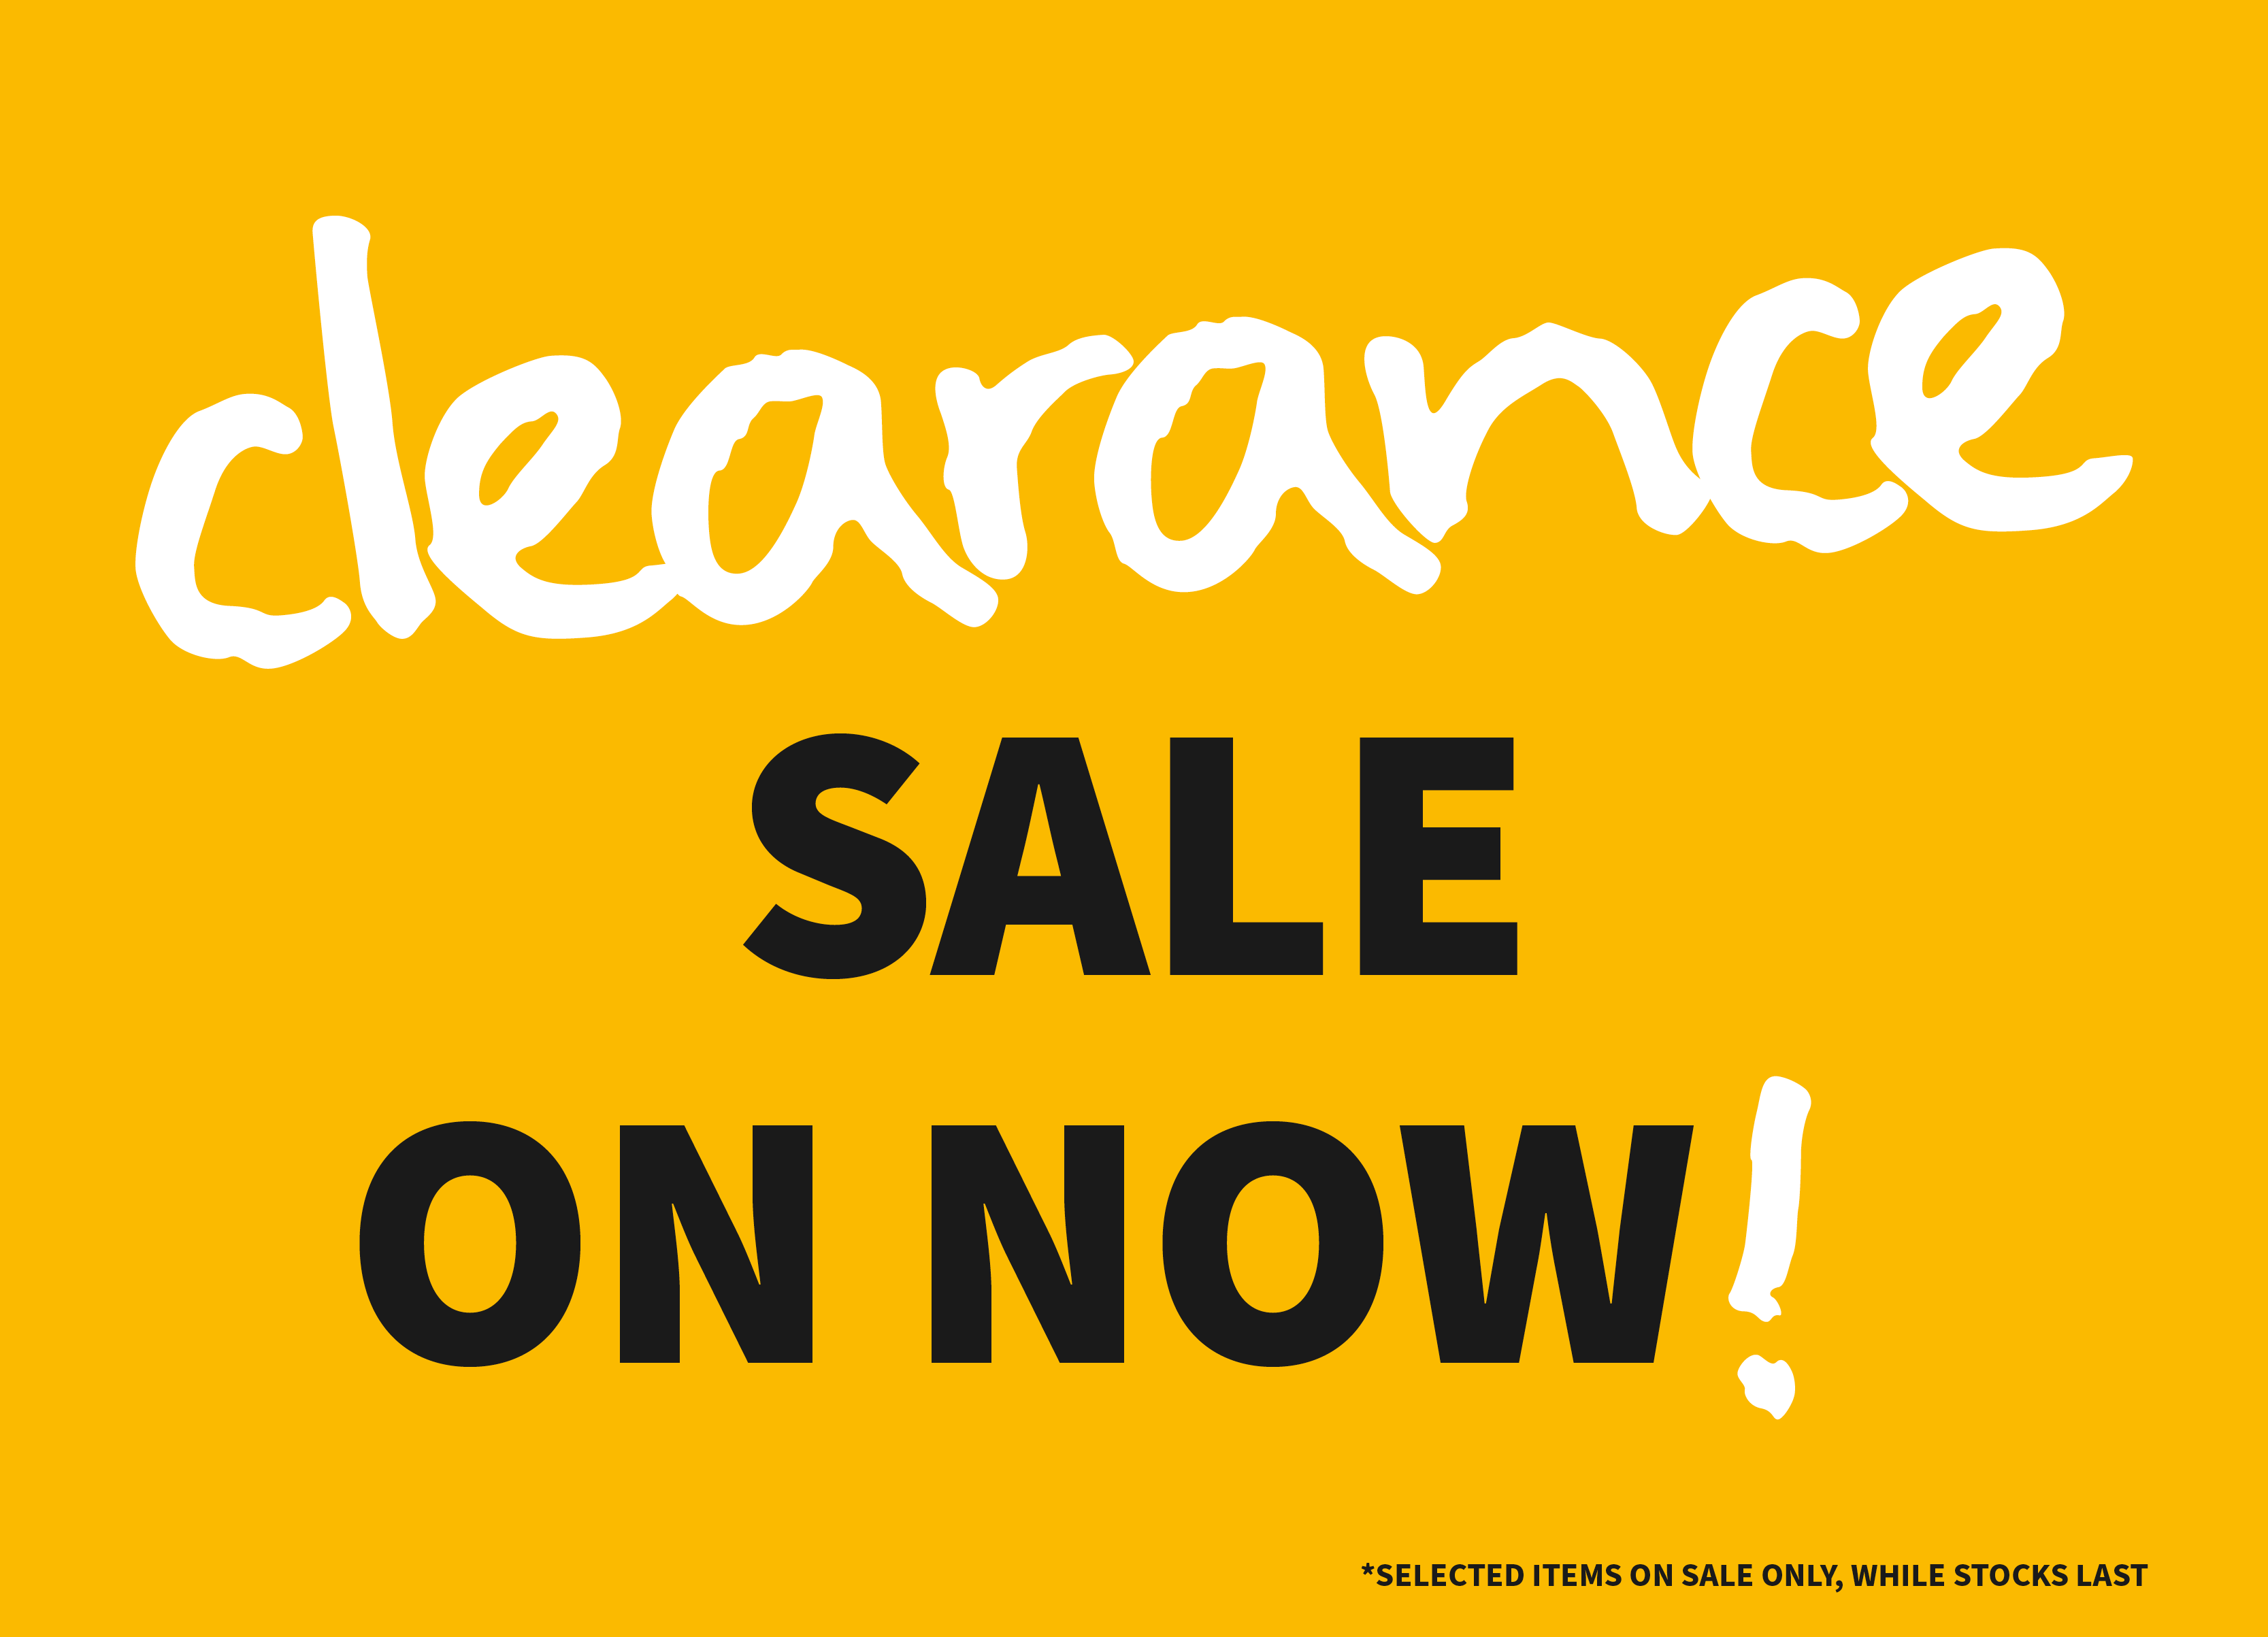 Category for Clearance Sale Products